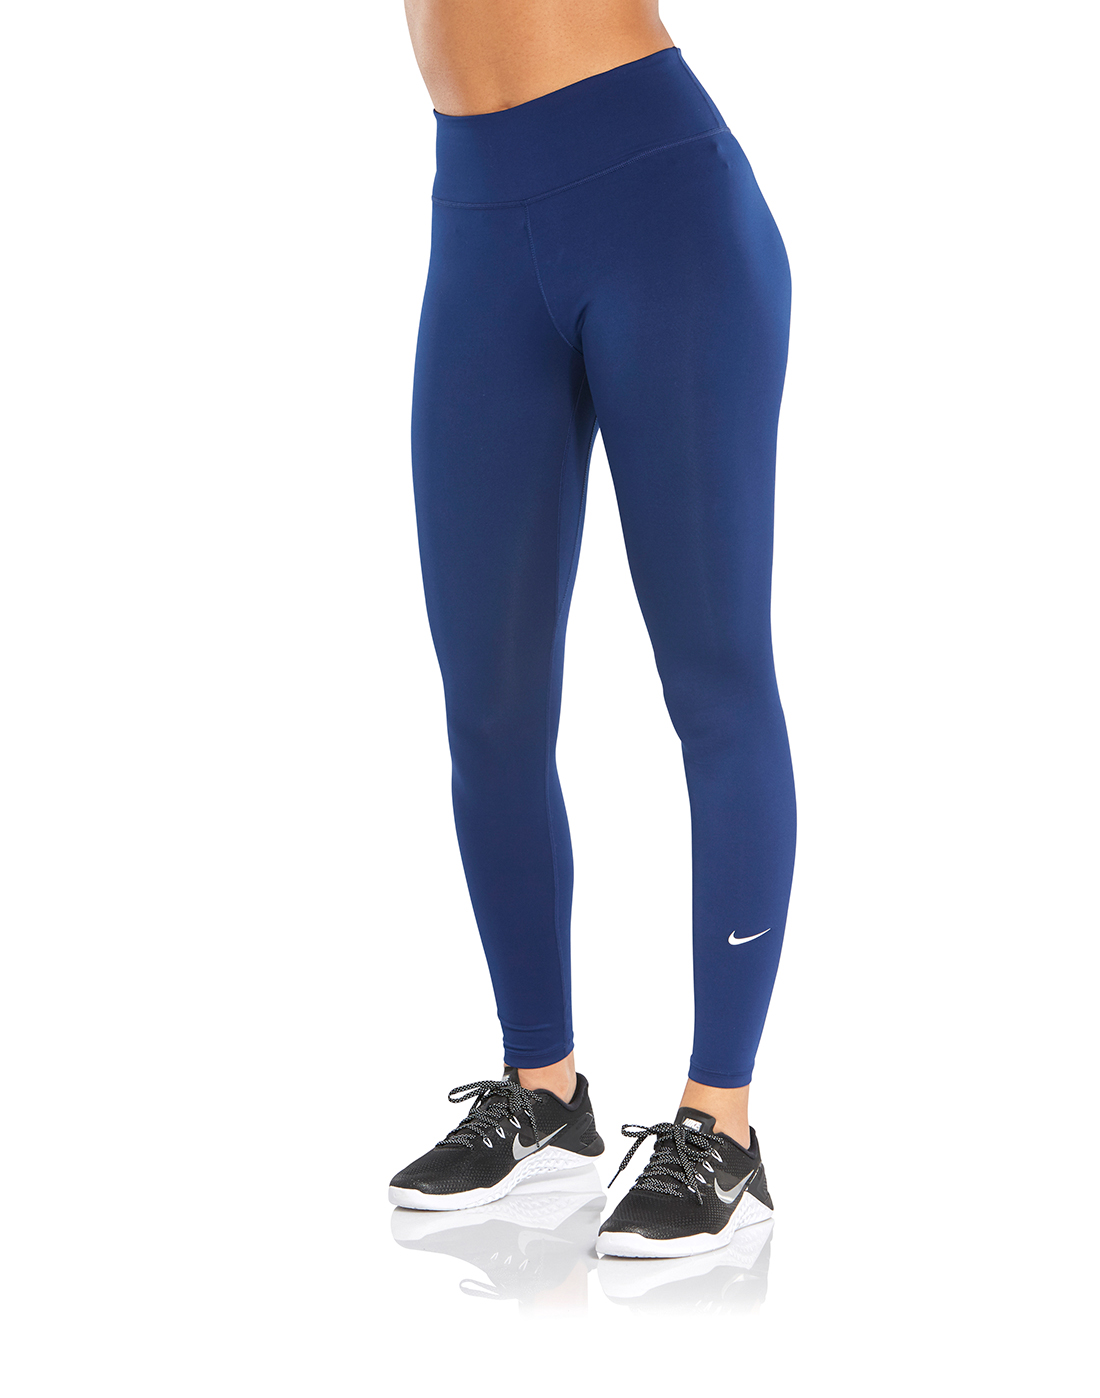 8dbe48eea9b27 Women's Blue Nike All-In-One Tights | Life Style Sports